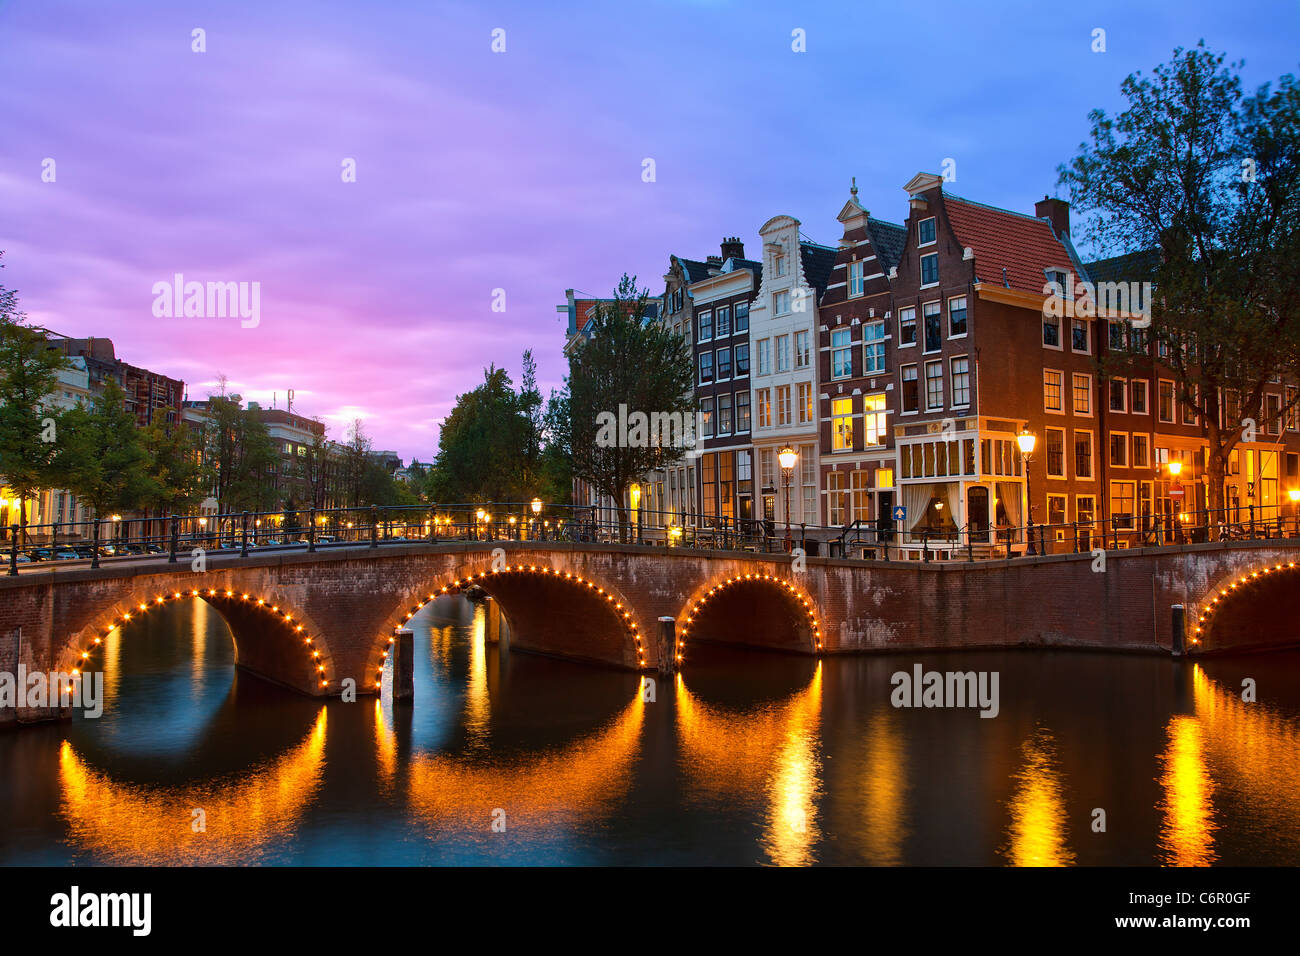 Europe, Netherlands, Keizersgracht Canal in Amsterdam at Dusk - Stock Image